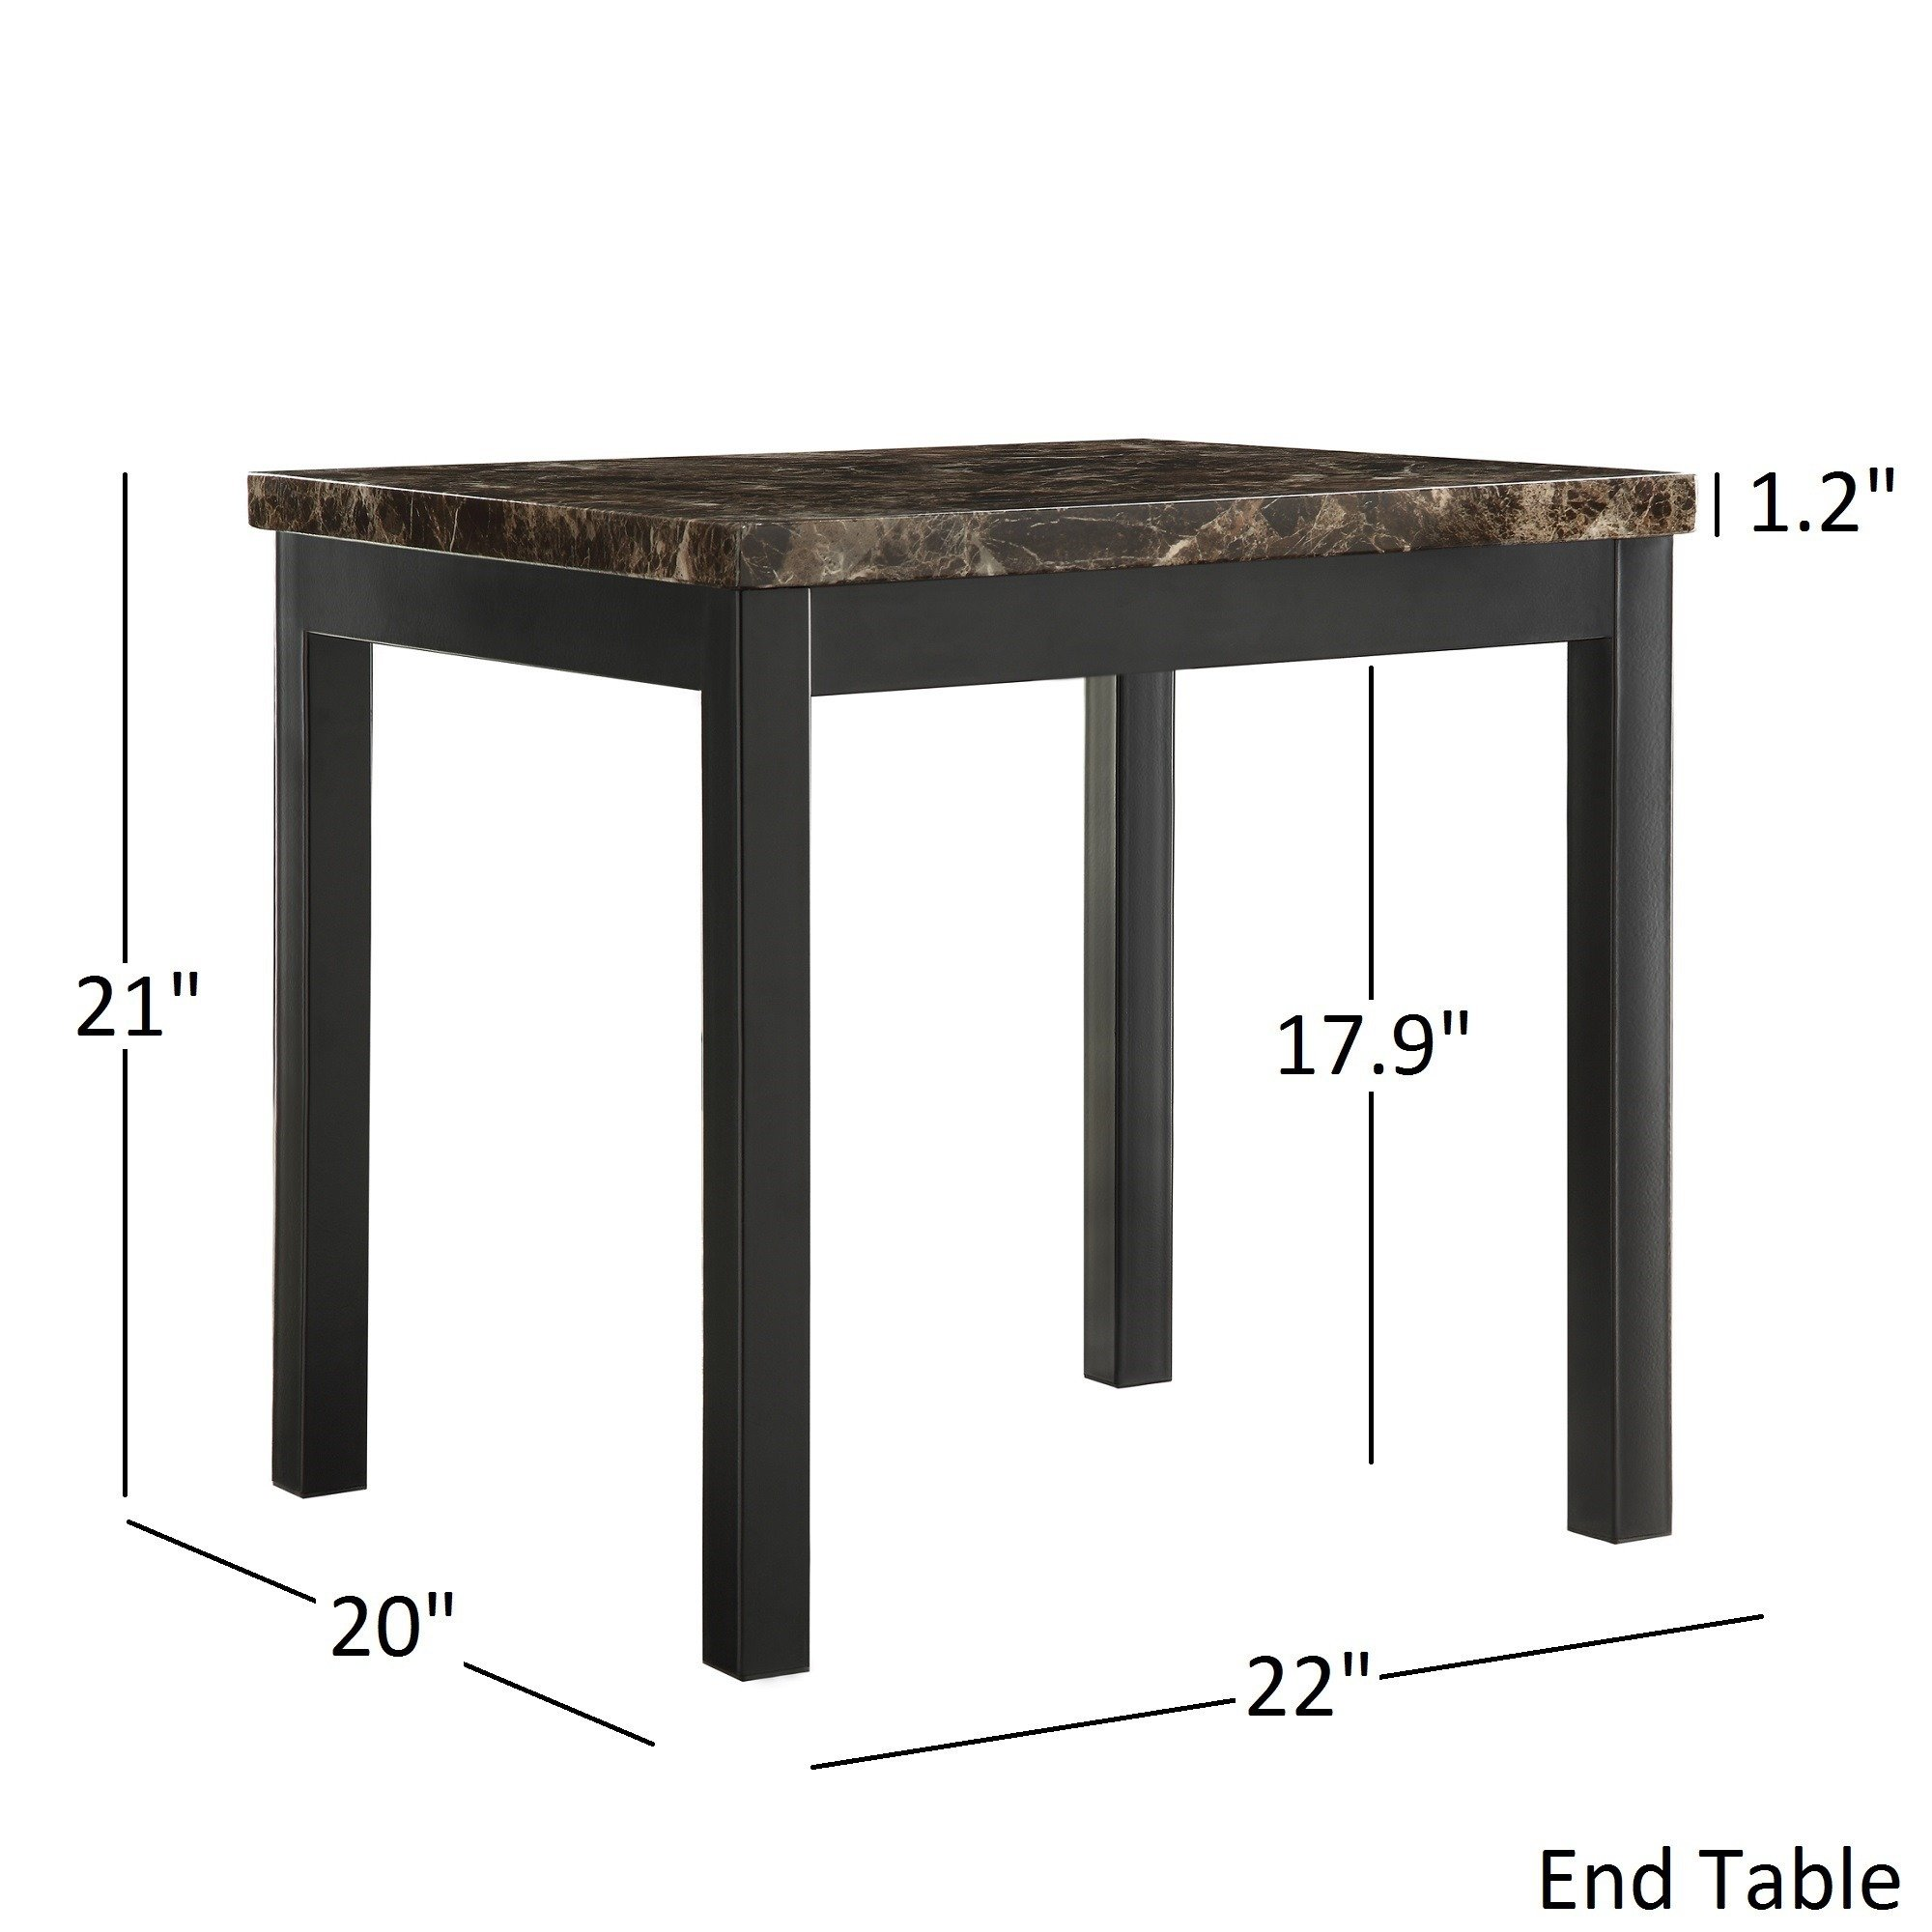 darcy piece metal and faux marble accent table set inspire bold free shipping today restaurant asian lamps runner placemats home decoration design gloss coffee unfinished chairs